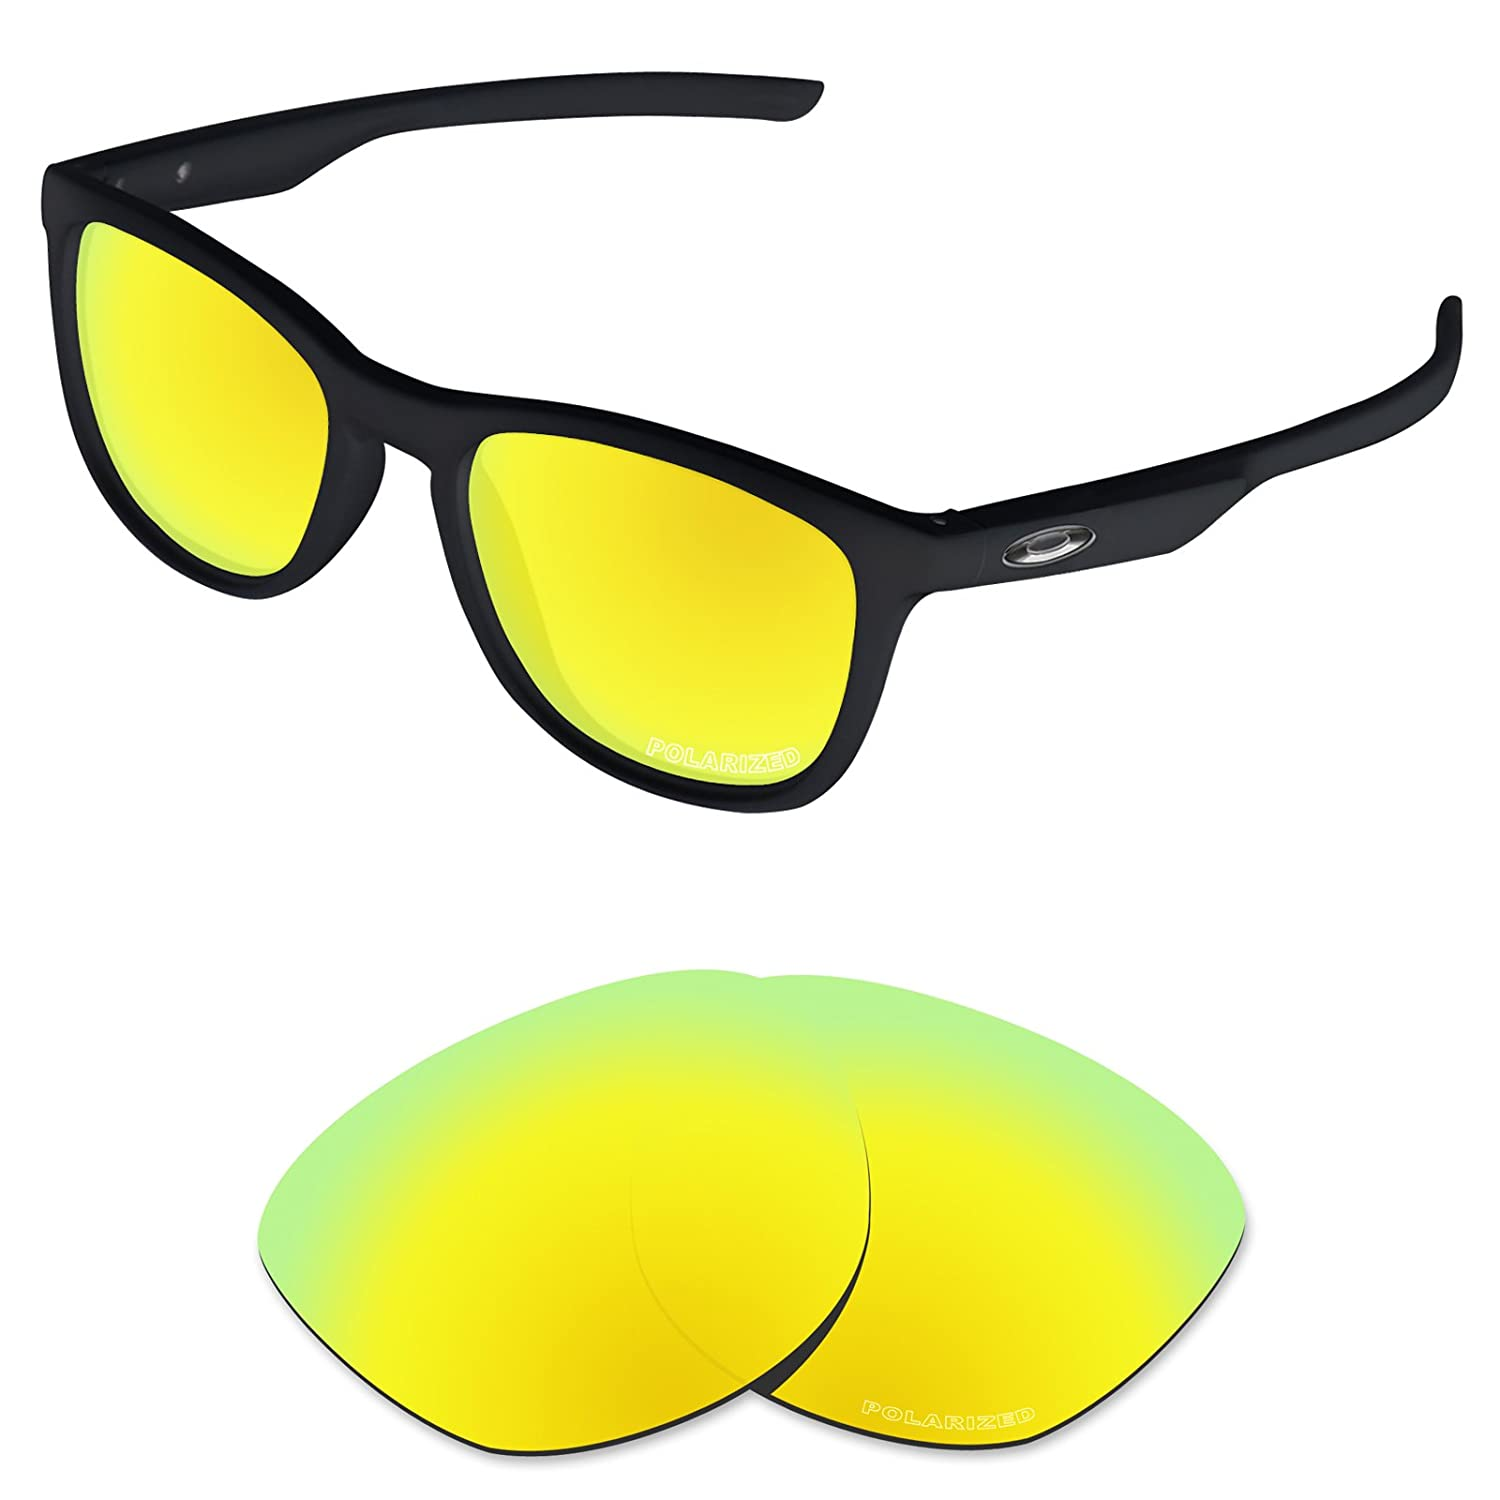 5c25478689 Amazon.com  Tintart Performance Lenses Compatible with Oakley Trillbe X Polarized  Etched-Carbon Black  Clothing